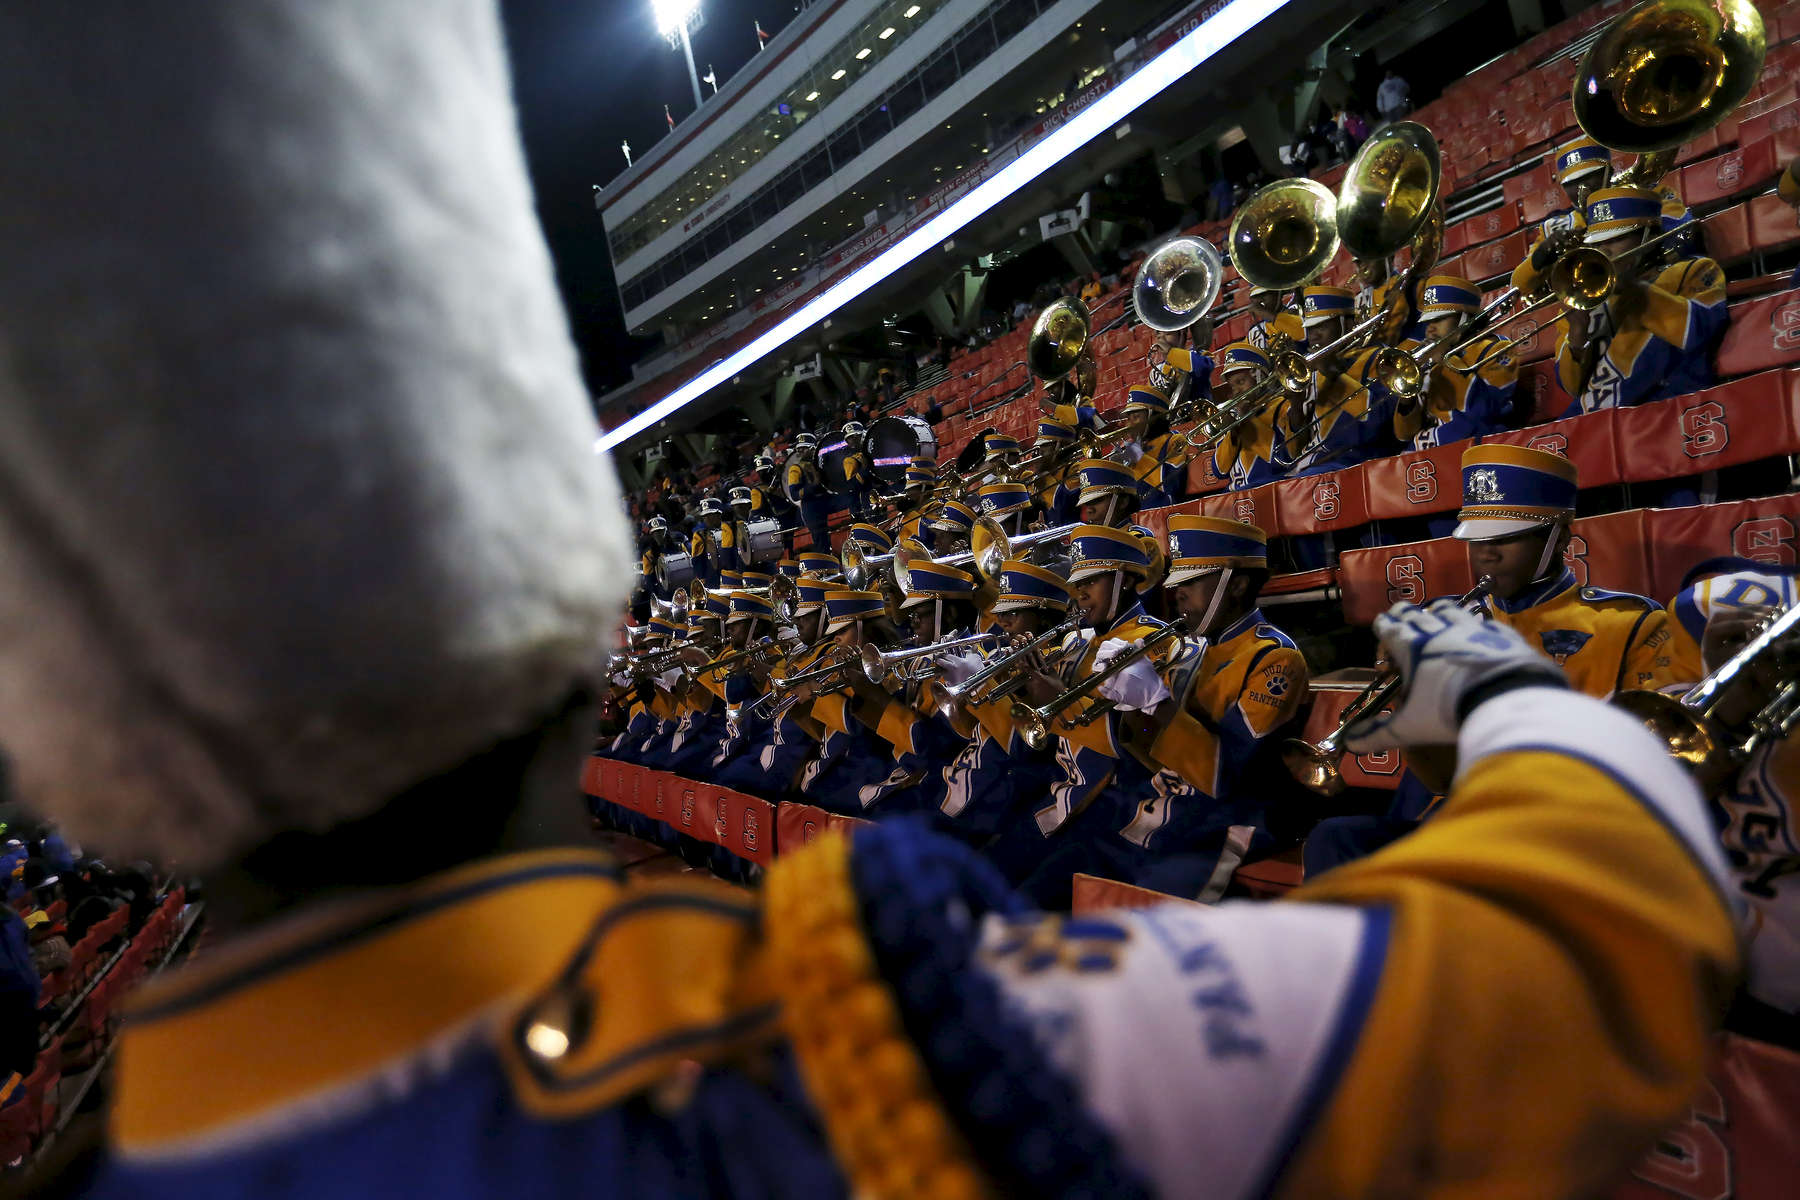 Sports POY: Runner UpEamon Queeney, North State Journal The Dudley Panthers marching band performs before the NCHSAA Division 4A State Championship football game against the Cape Fear Colts at Carter-Finley Stadium in Raleigh, Saturday, December 17, 2016. The Dudley Panthers defeated the Cape Fear Colts 54 - 0.